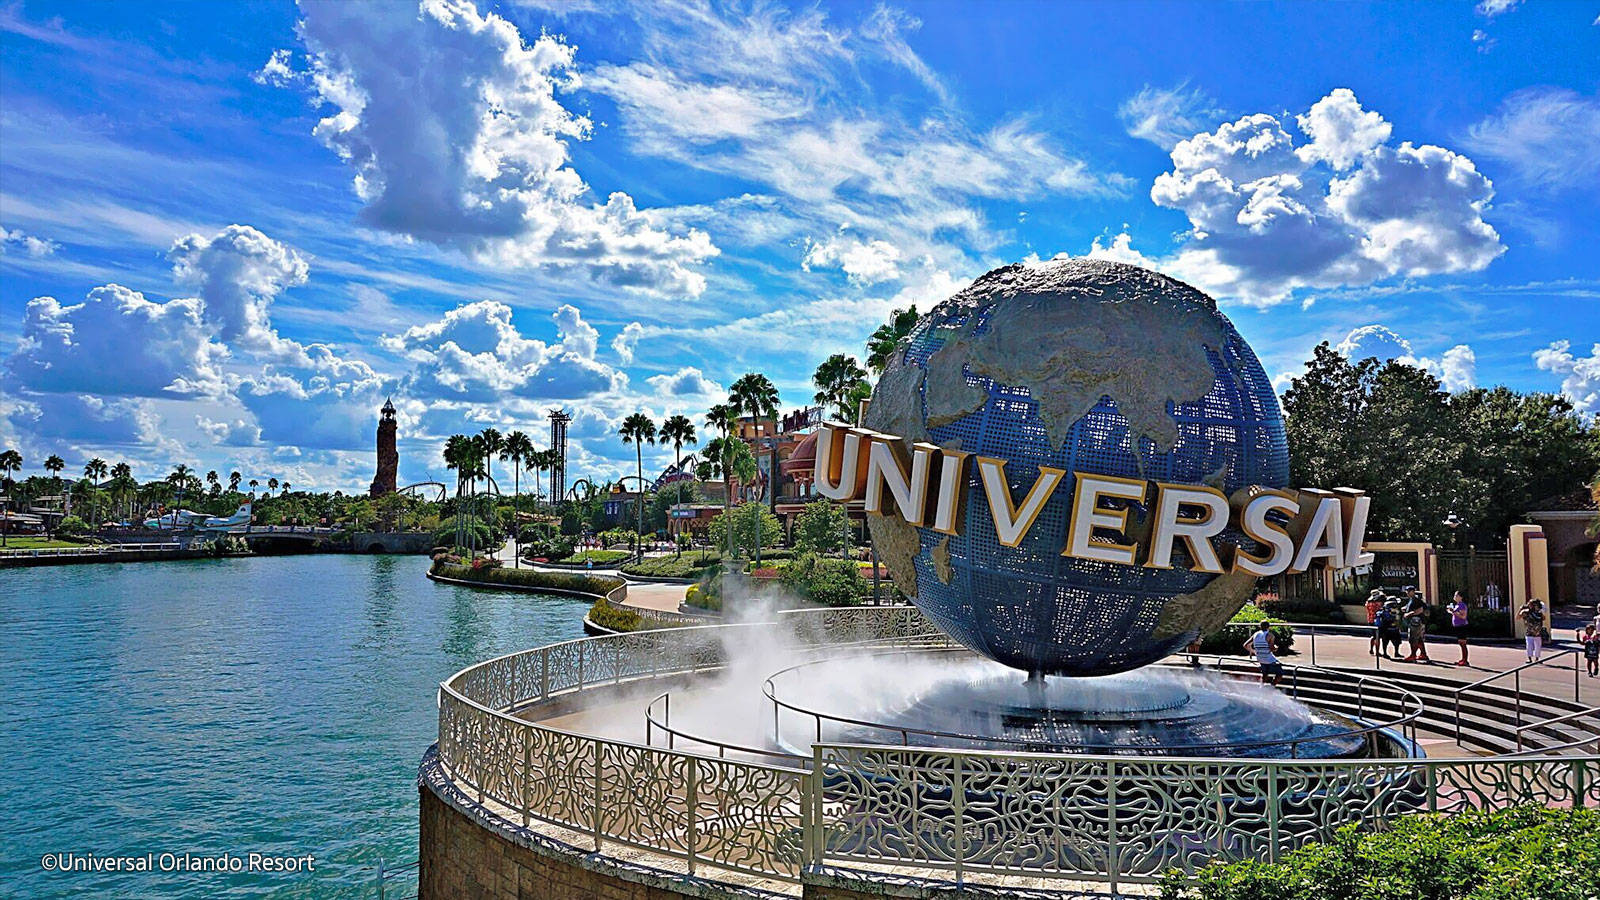 Universal Orlando picked a bad time to close attractions.